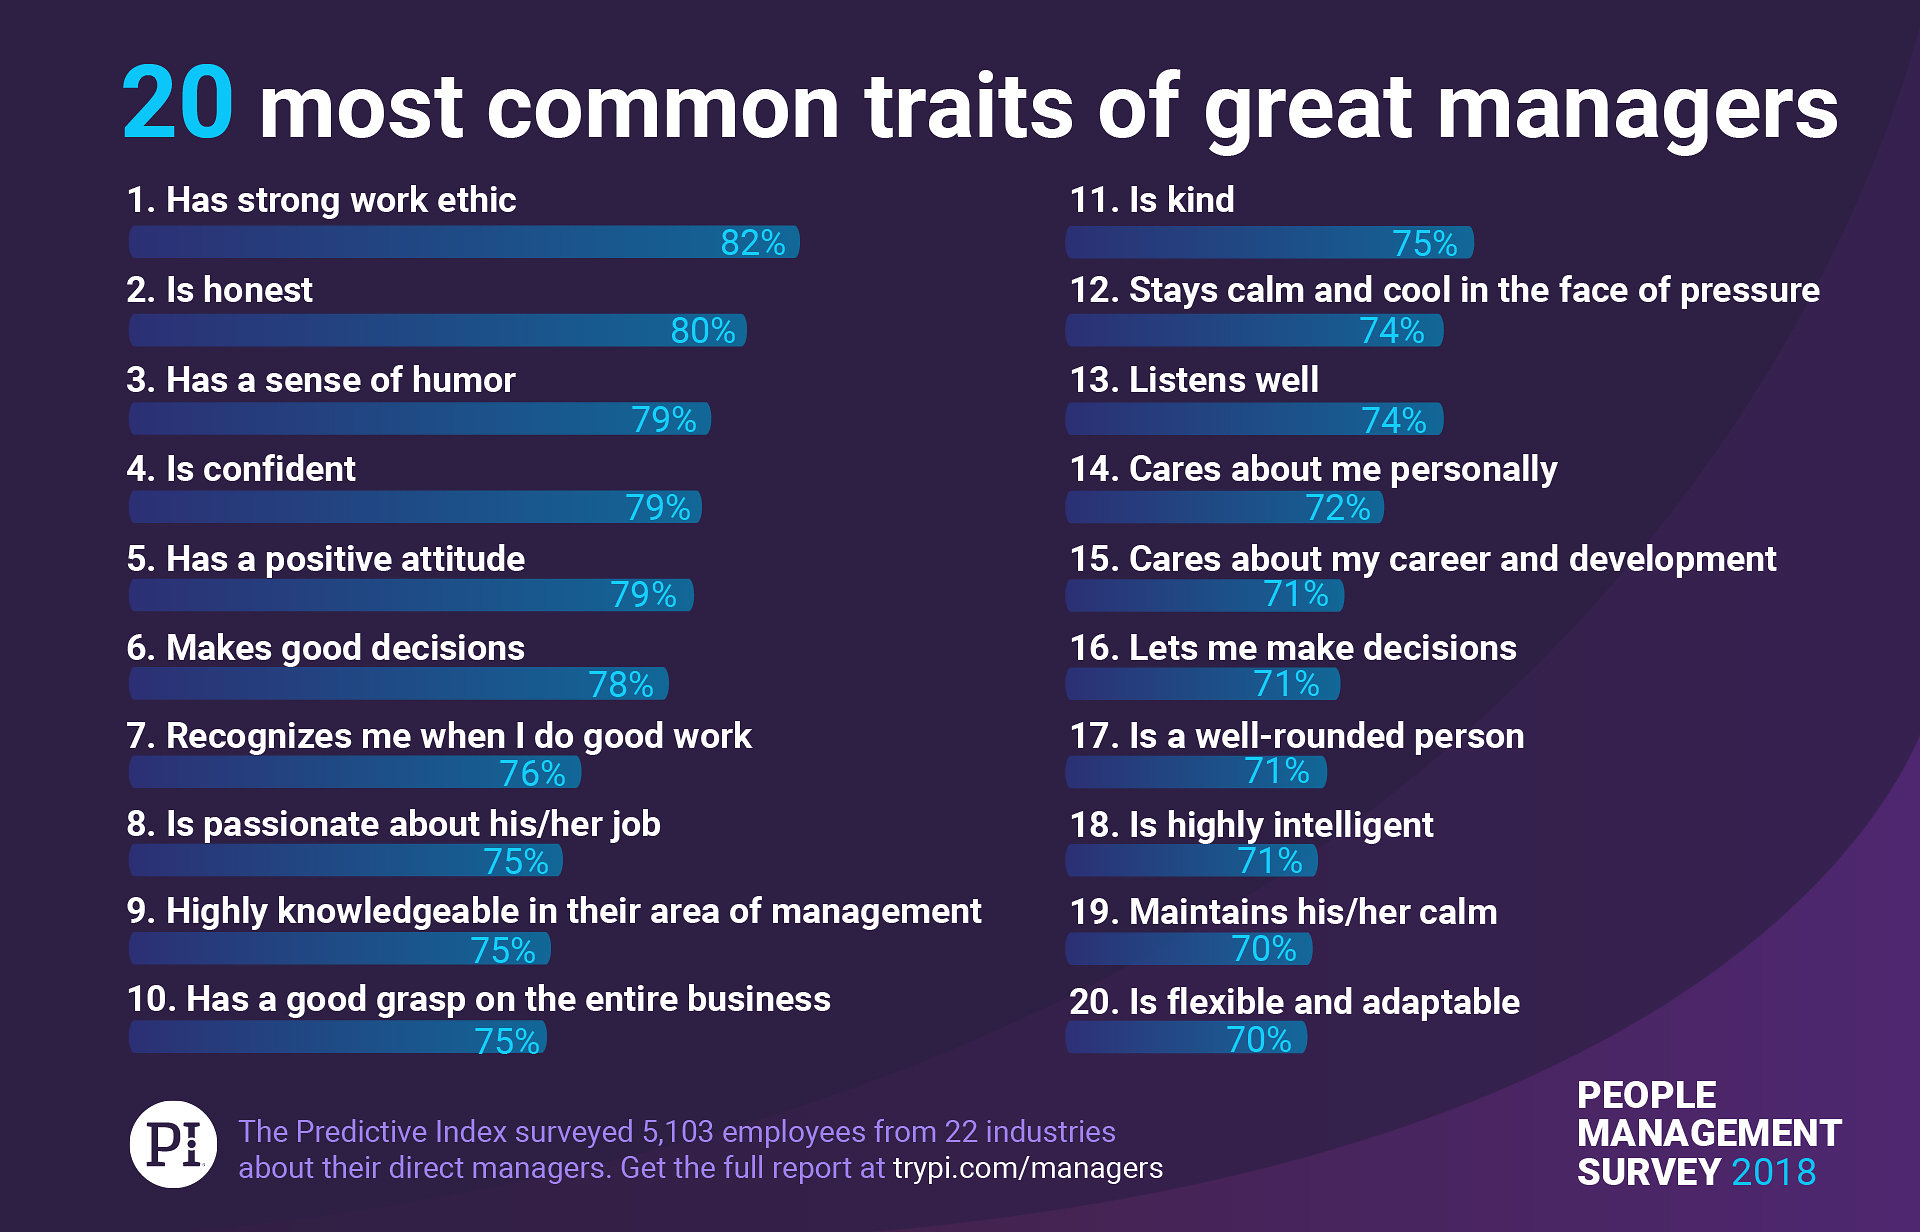 75 percent of great managers are passionate about their job